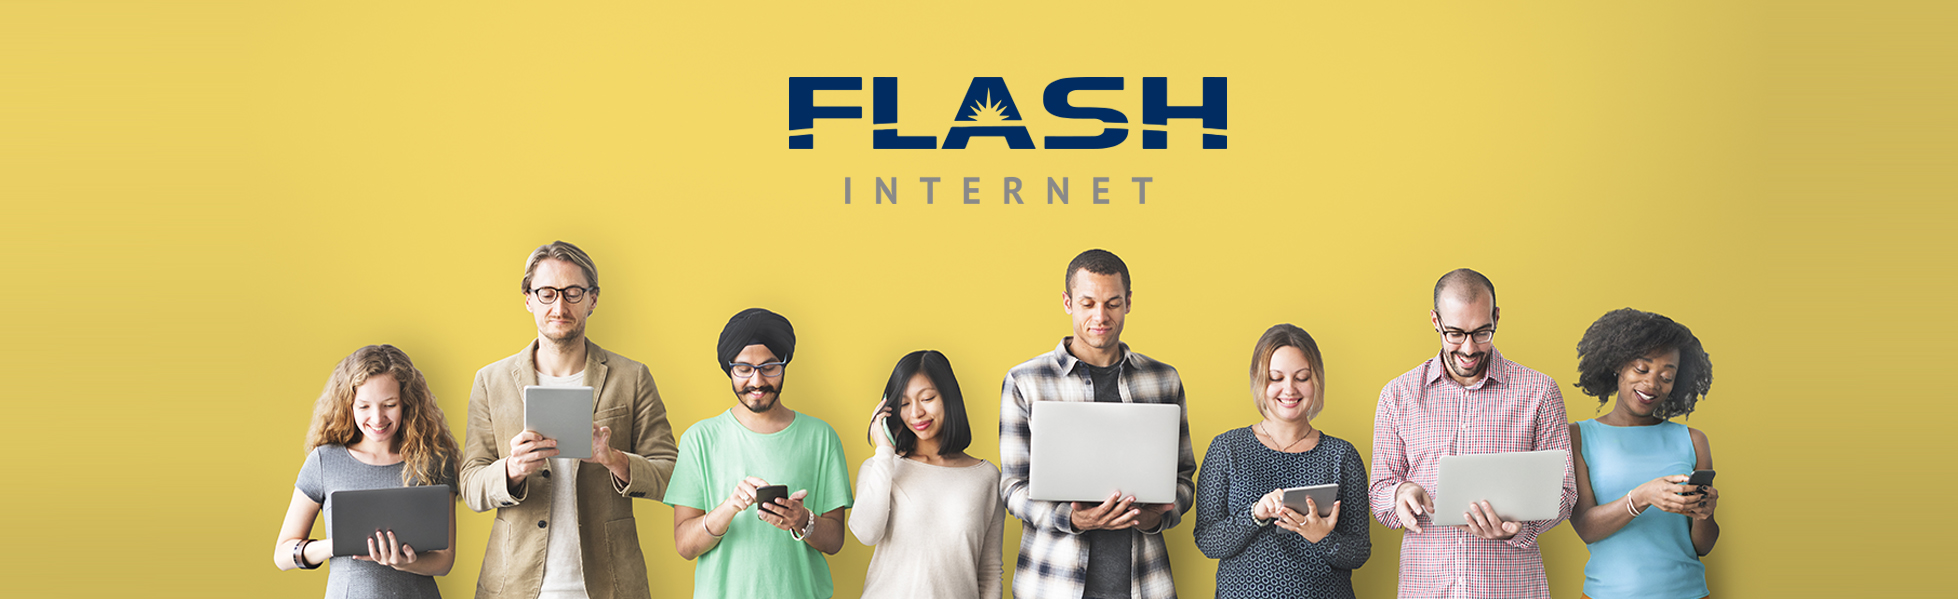 FLASH INTERNET